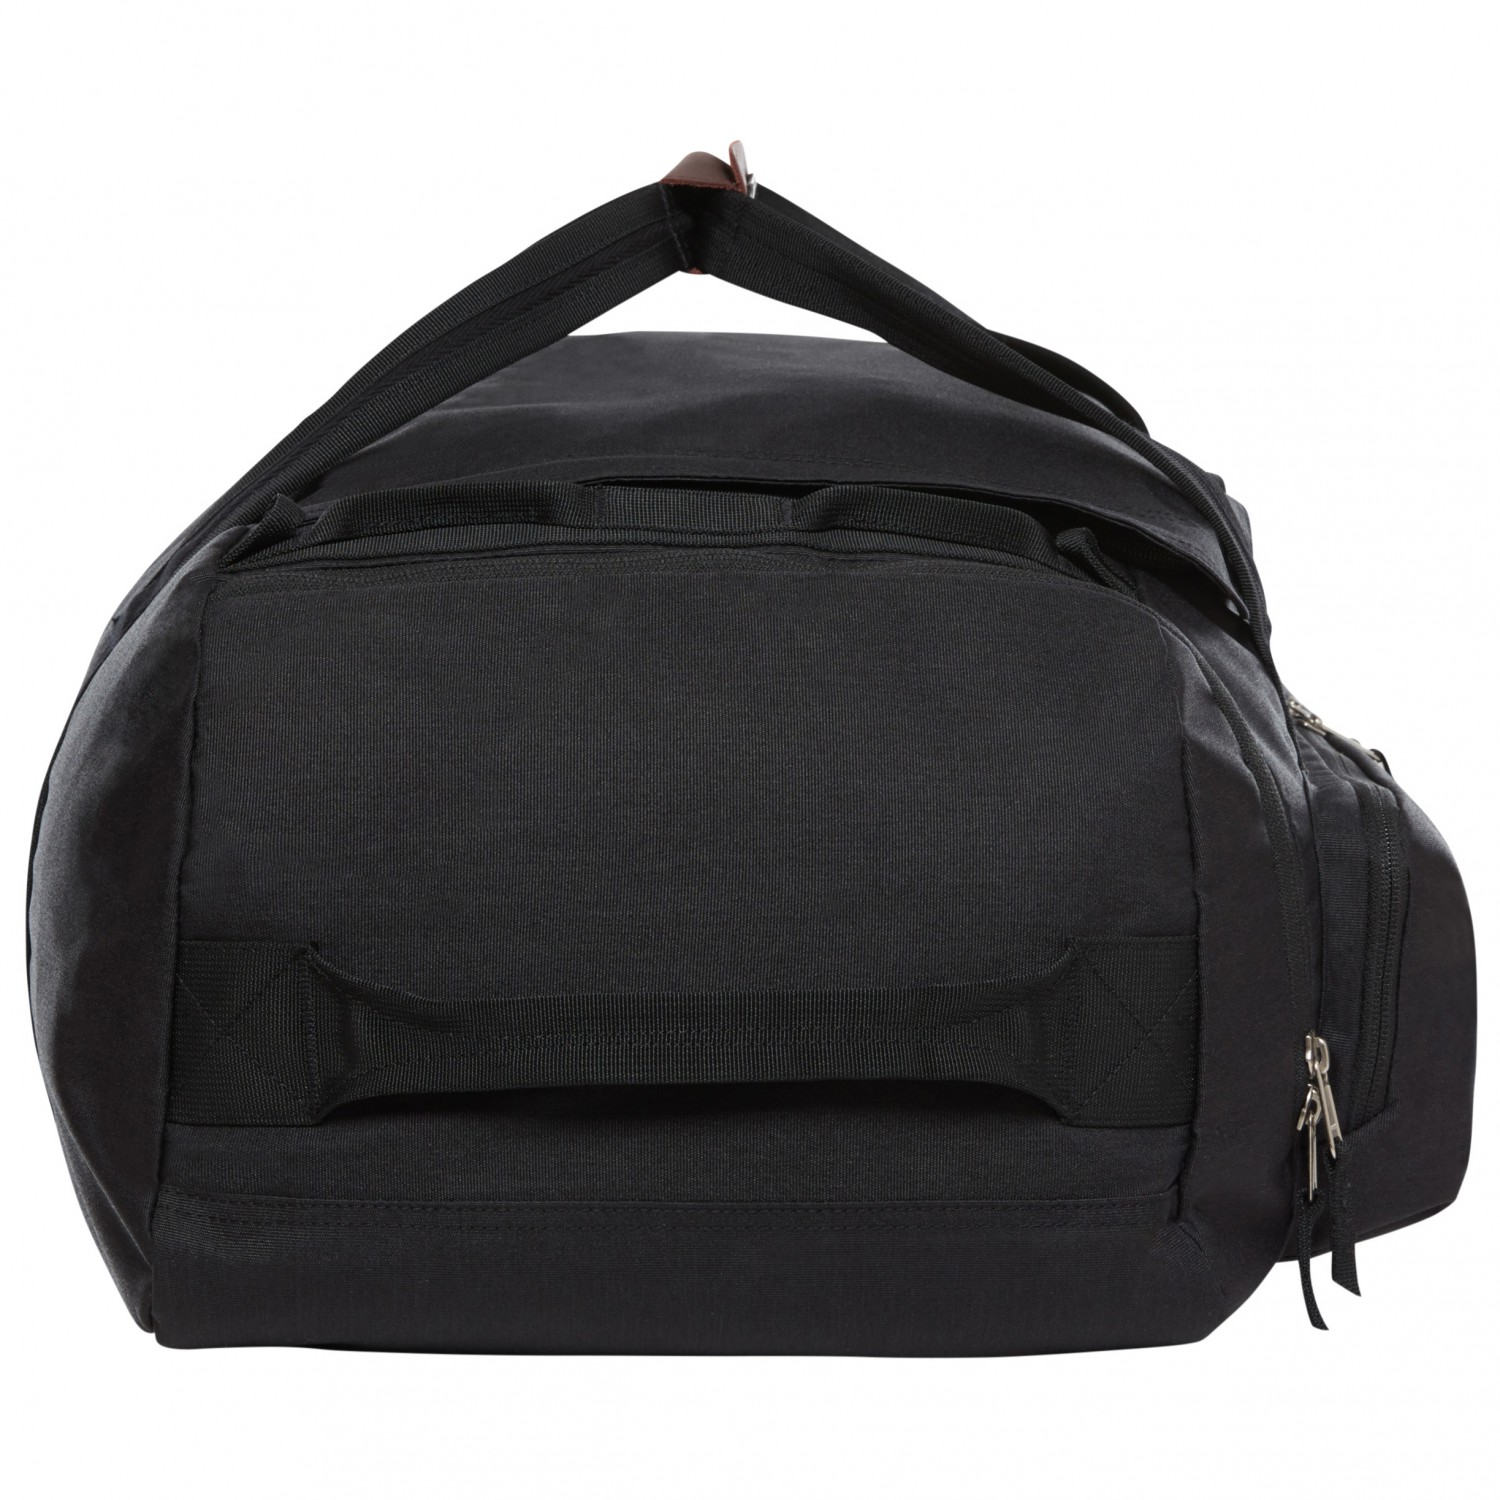 e87275638e27 The North Face Berkeley Duffel M 49 - Luggage | Free UK Delivery ...